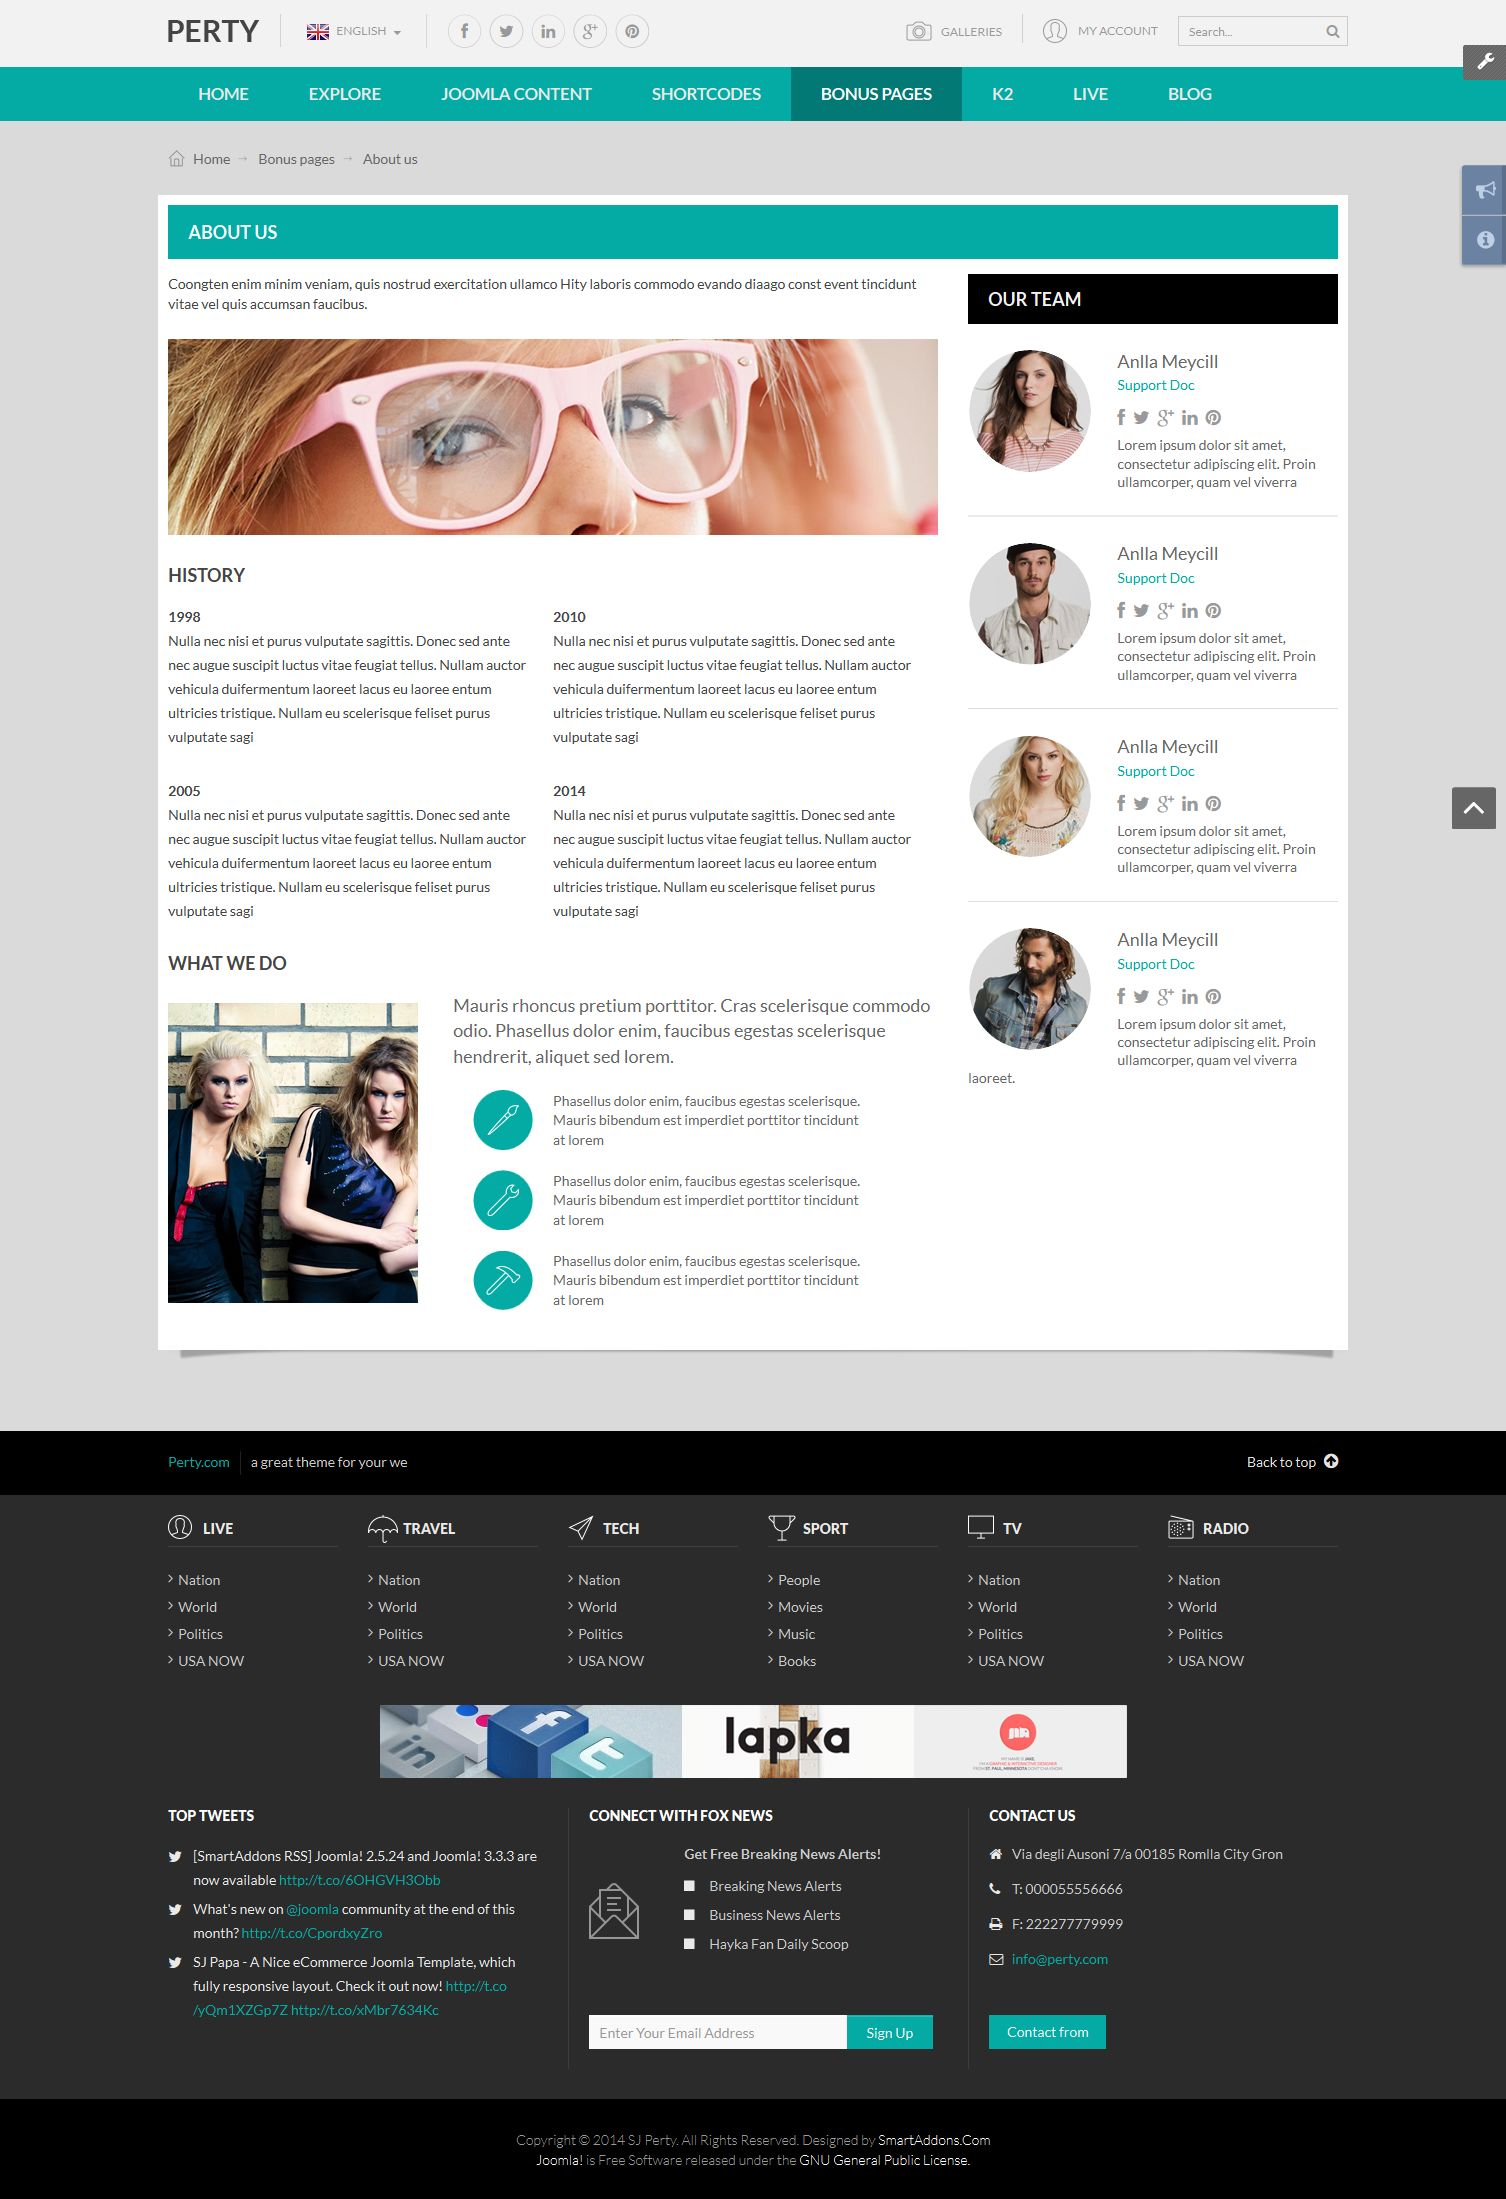 SJ Perty - Responsive Joomla News Video Template - 11_about.jpg